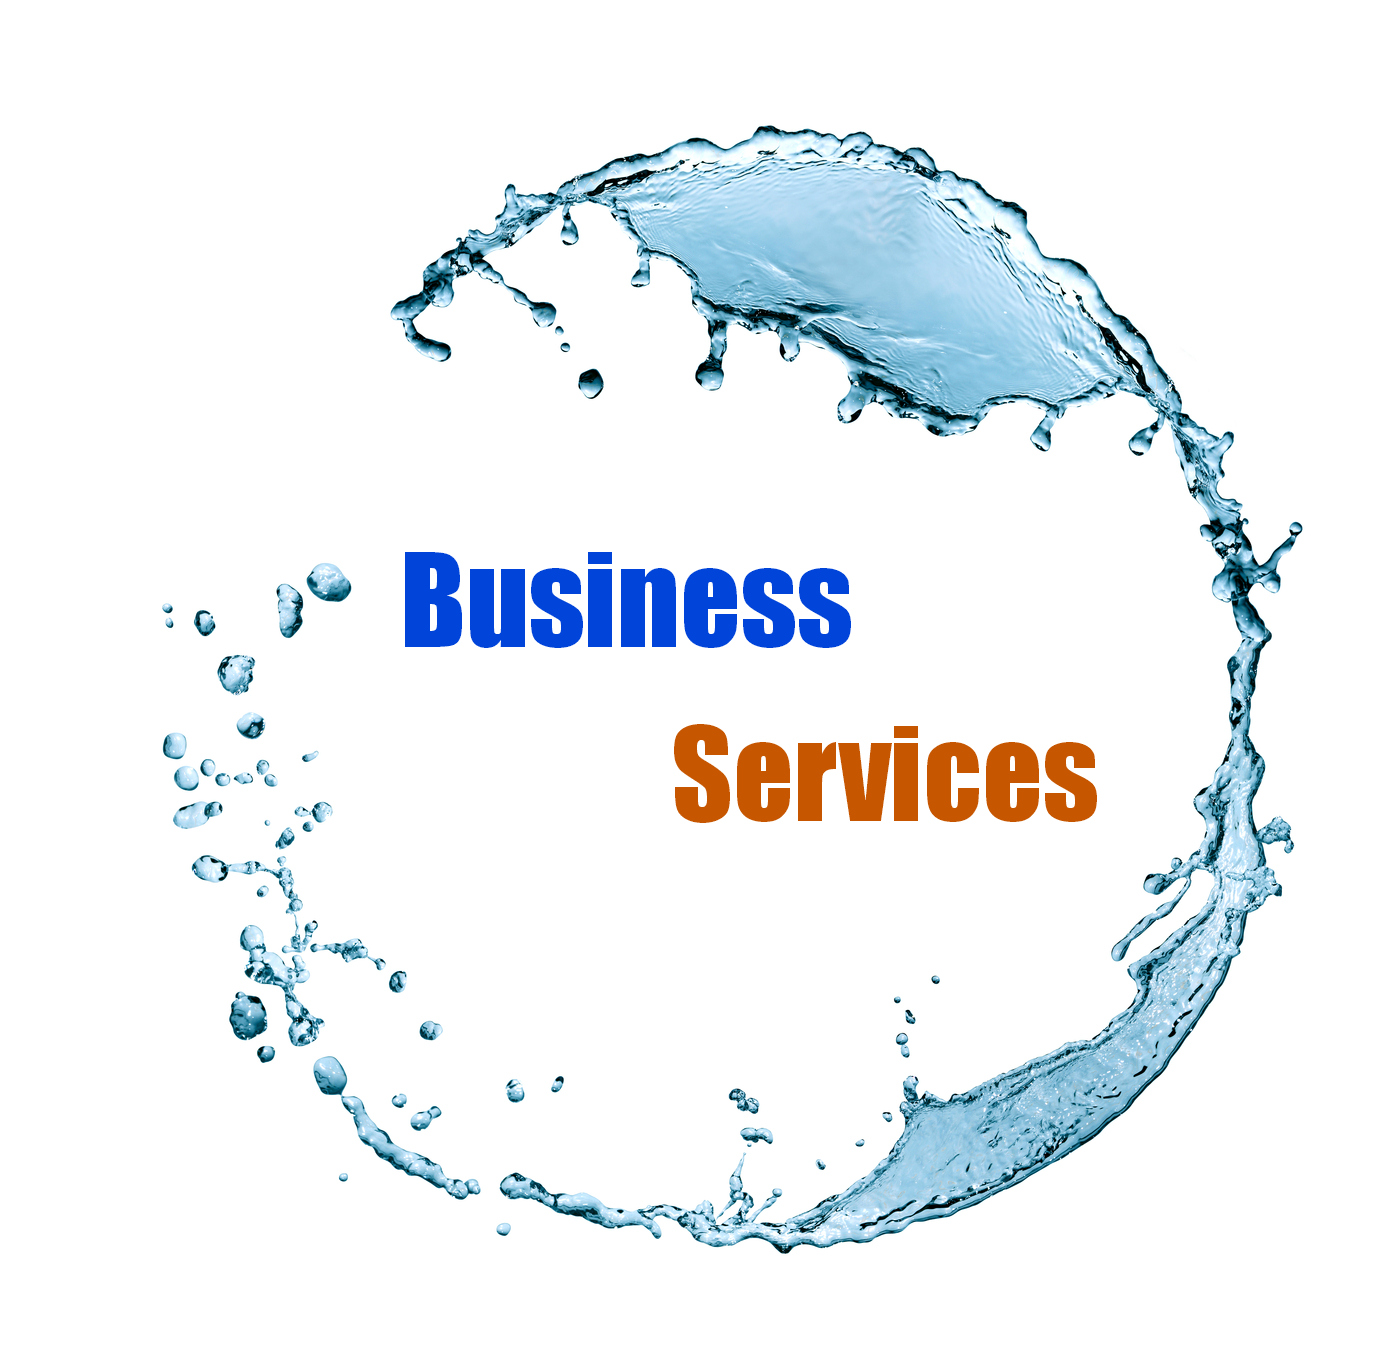 Business Services.jpg